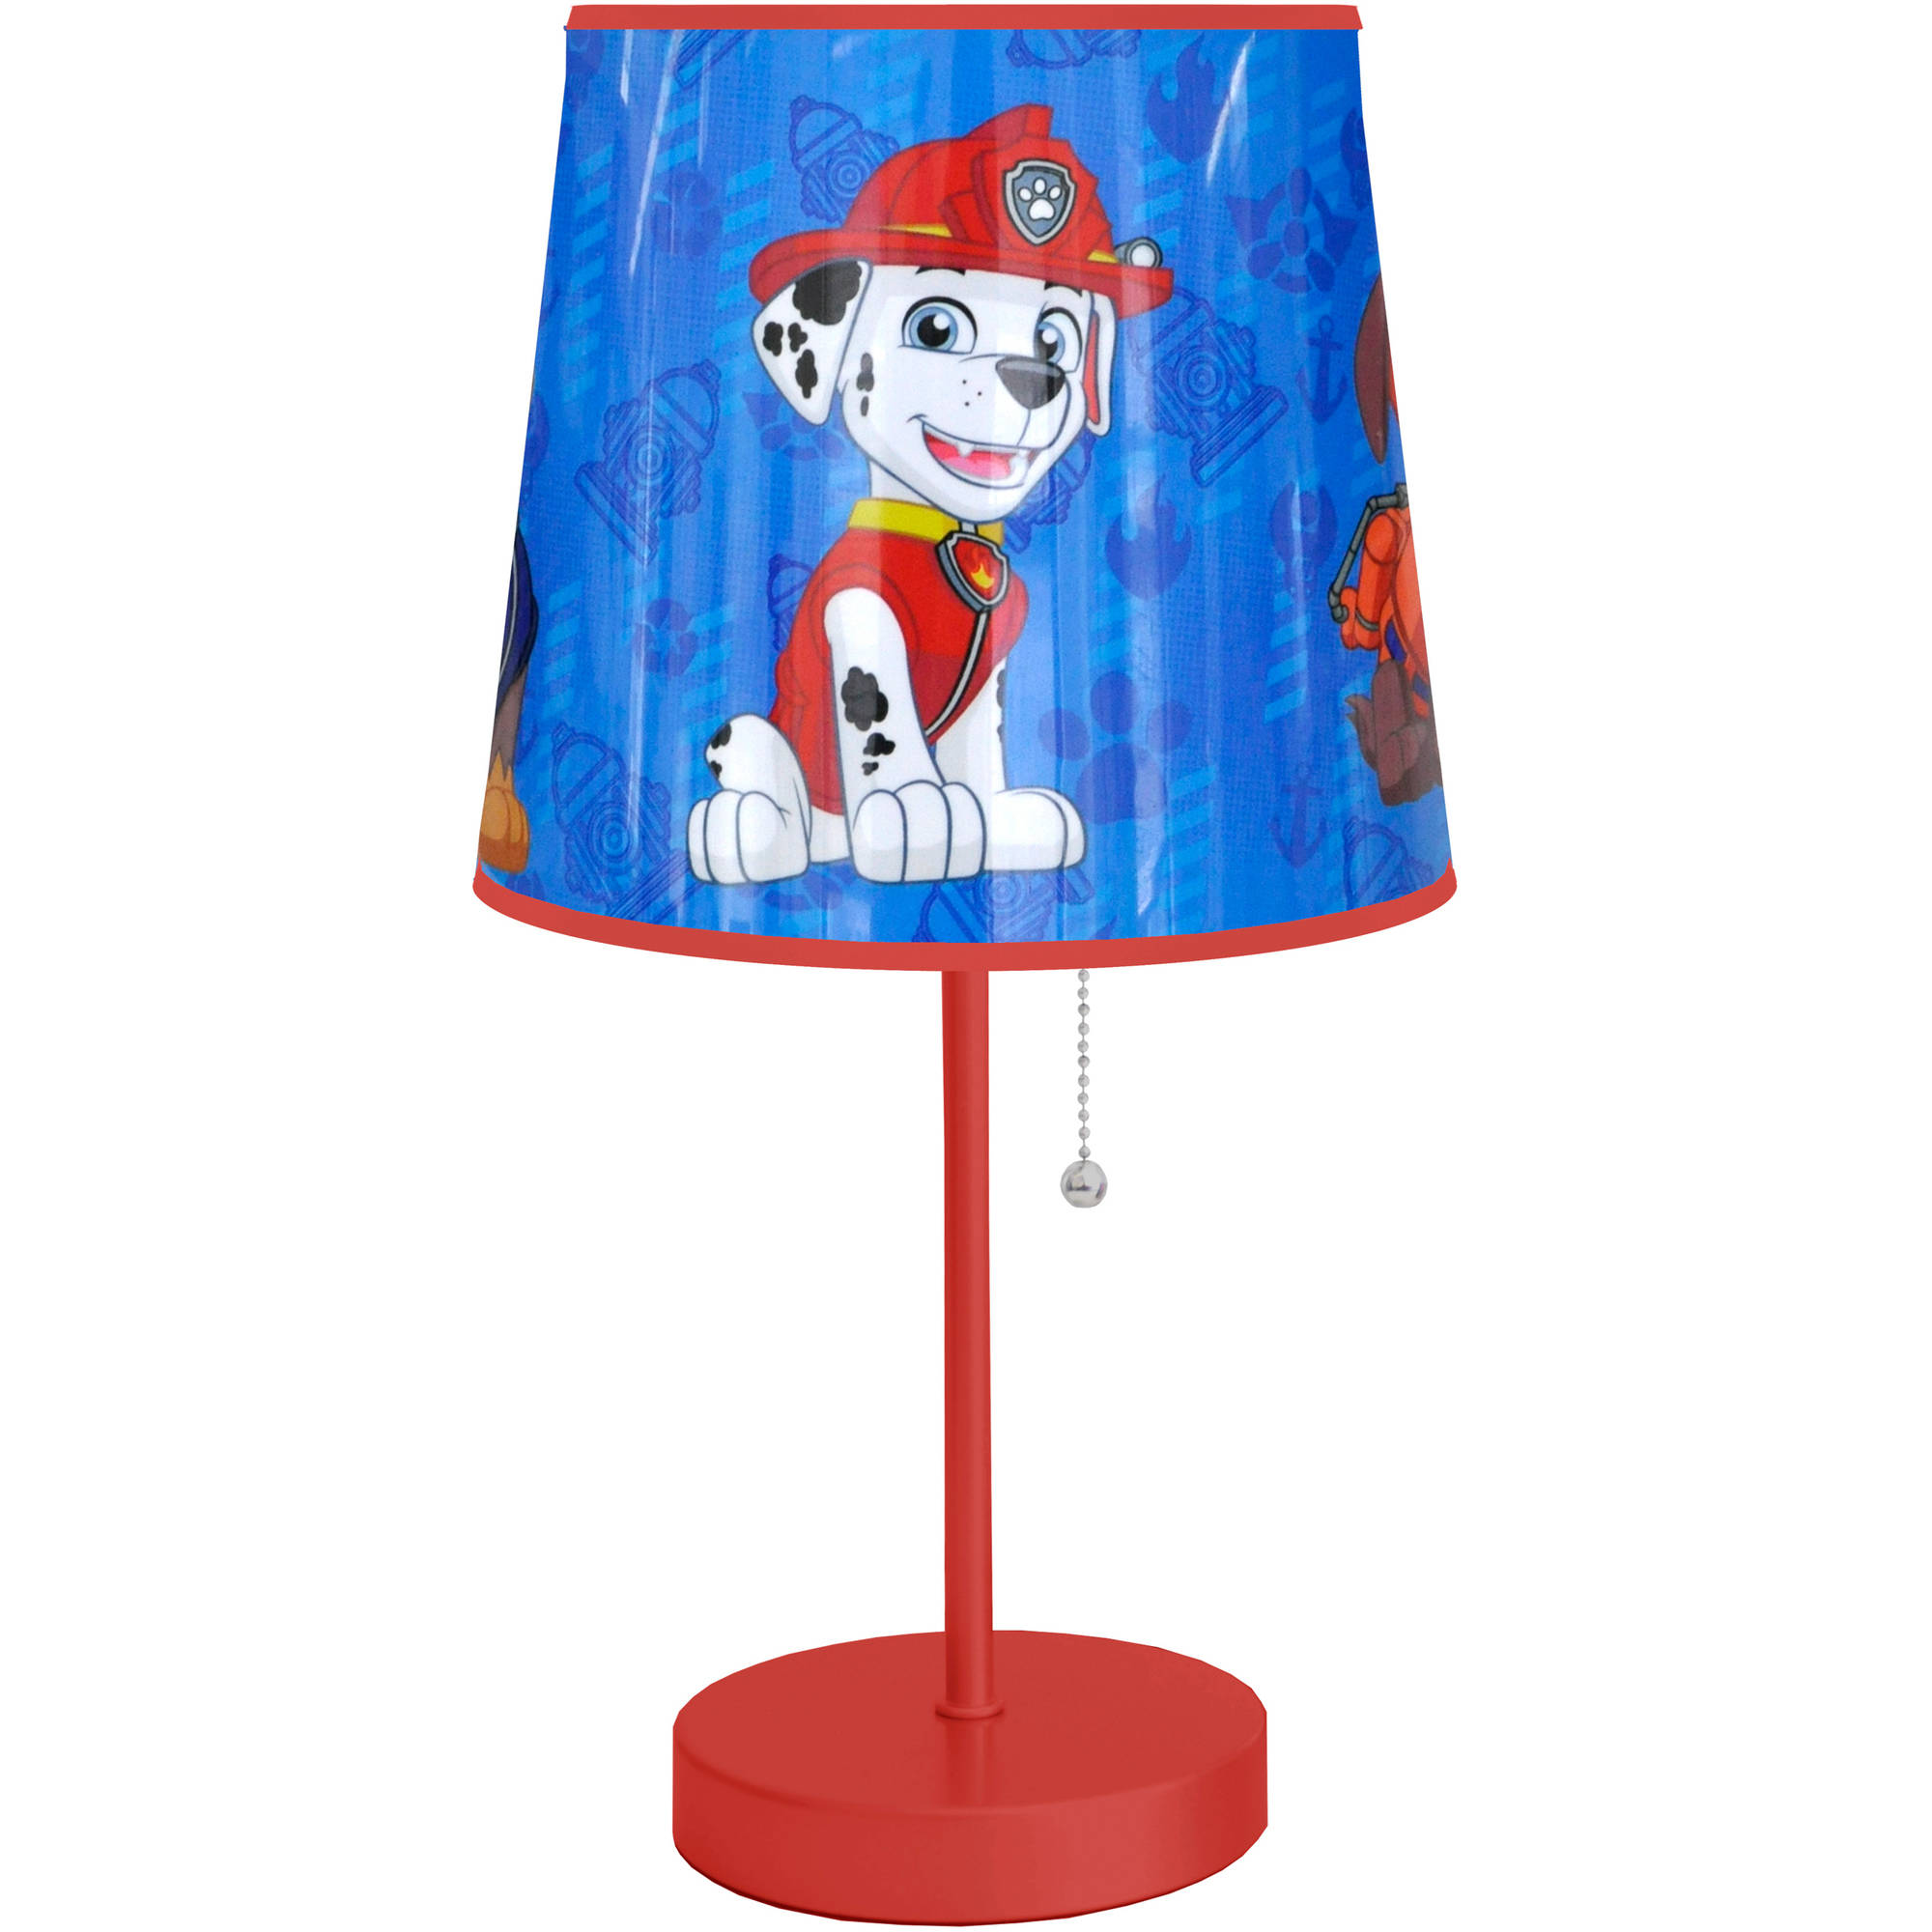 Childrens Night Light Table Lamps Paw Patrol Lamp Nickelodeon Kids Boys Bedroom Nursery